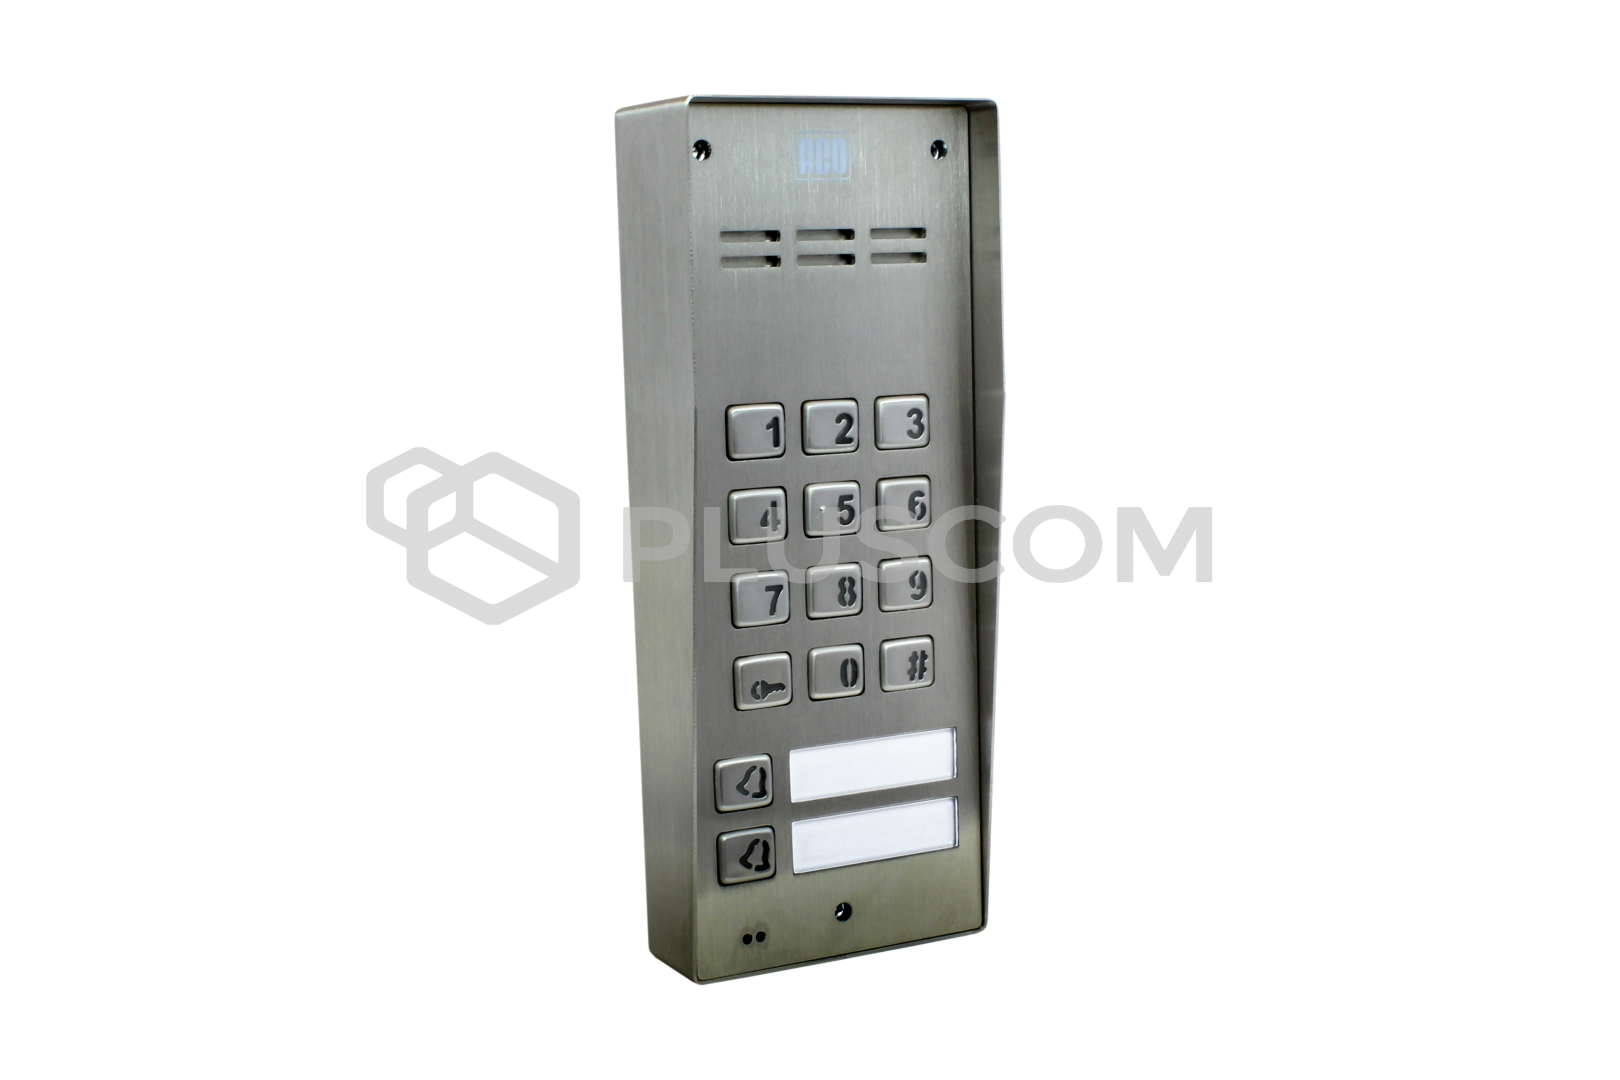 fam p 2npzs nt two family digital door entry panel with keypad. Black Bedroom Furniture Sets. Home Design Ideas